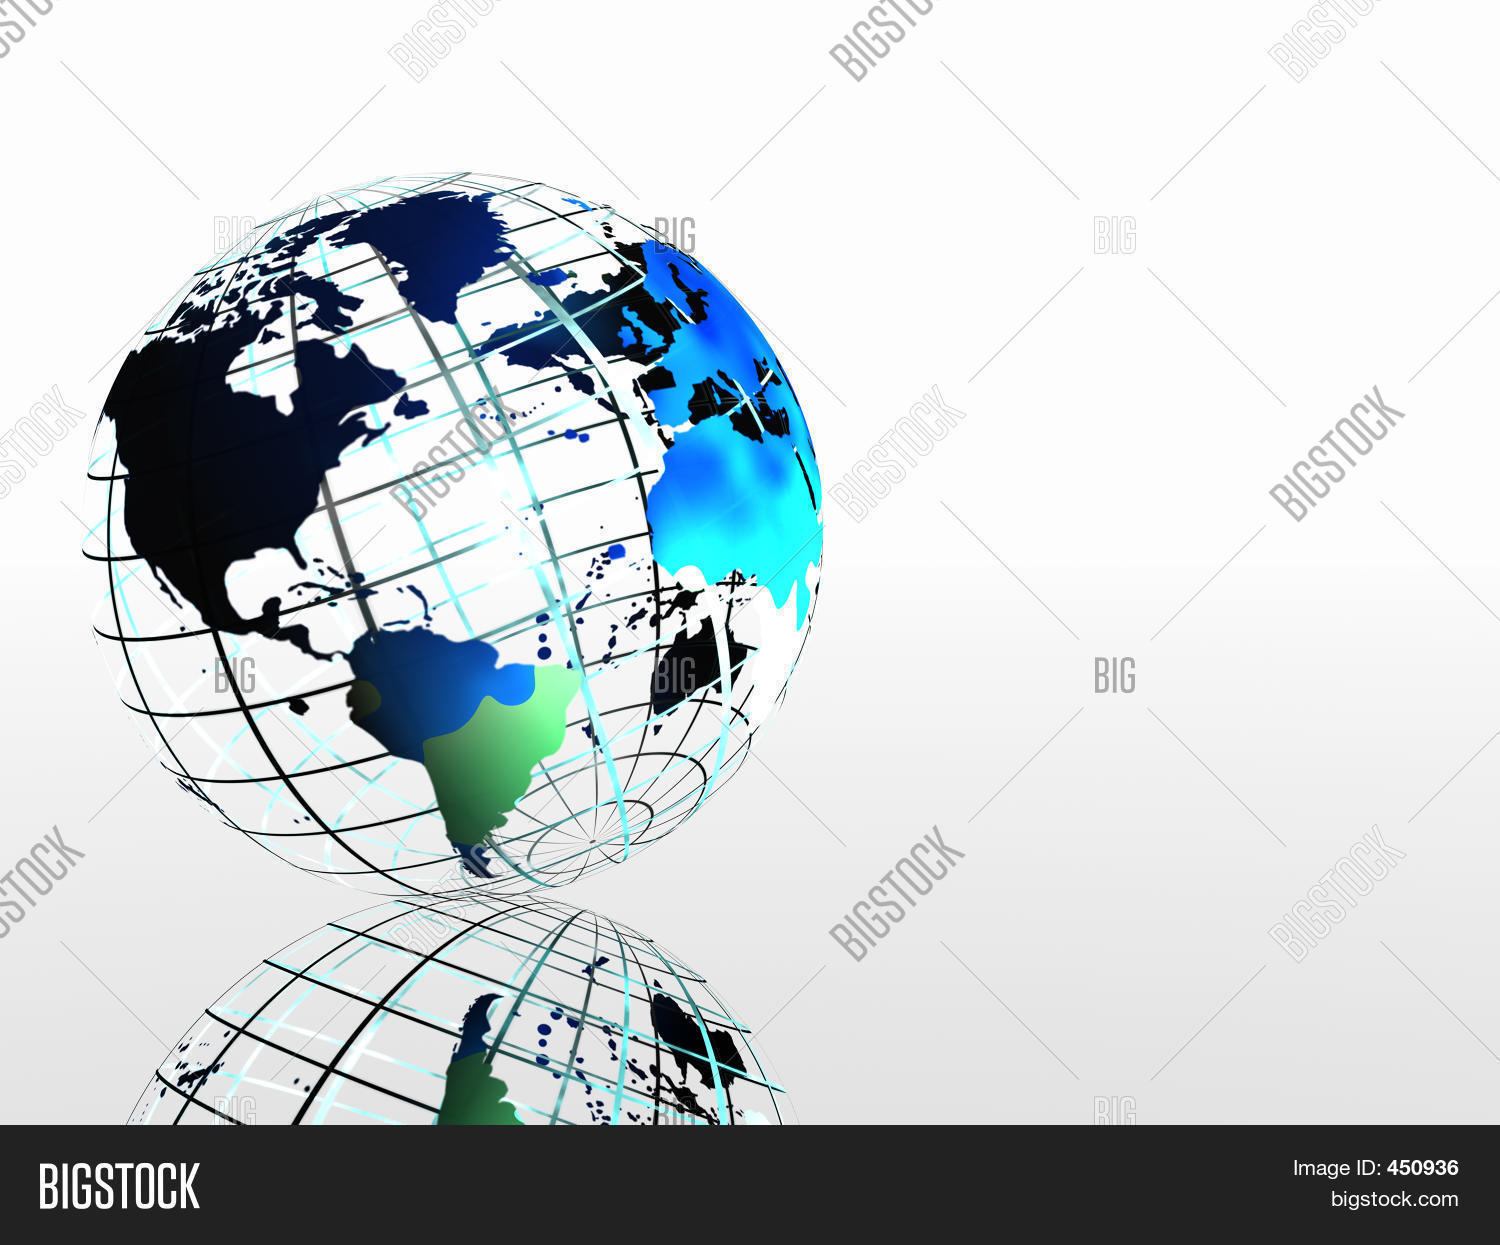 World map on grid image photo free trial bigstock world map on grid gumiabroncs Gallery